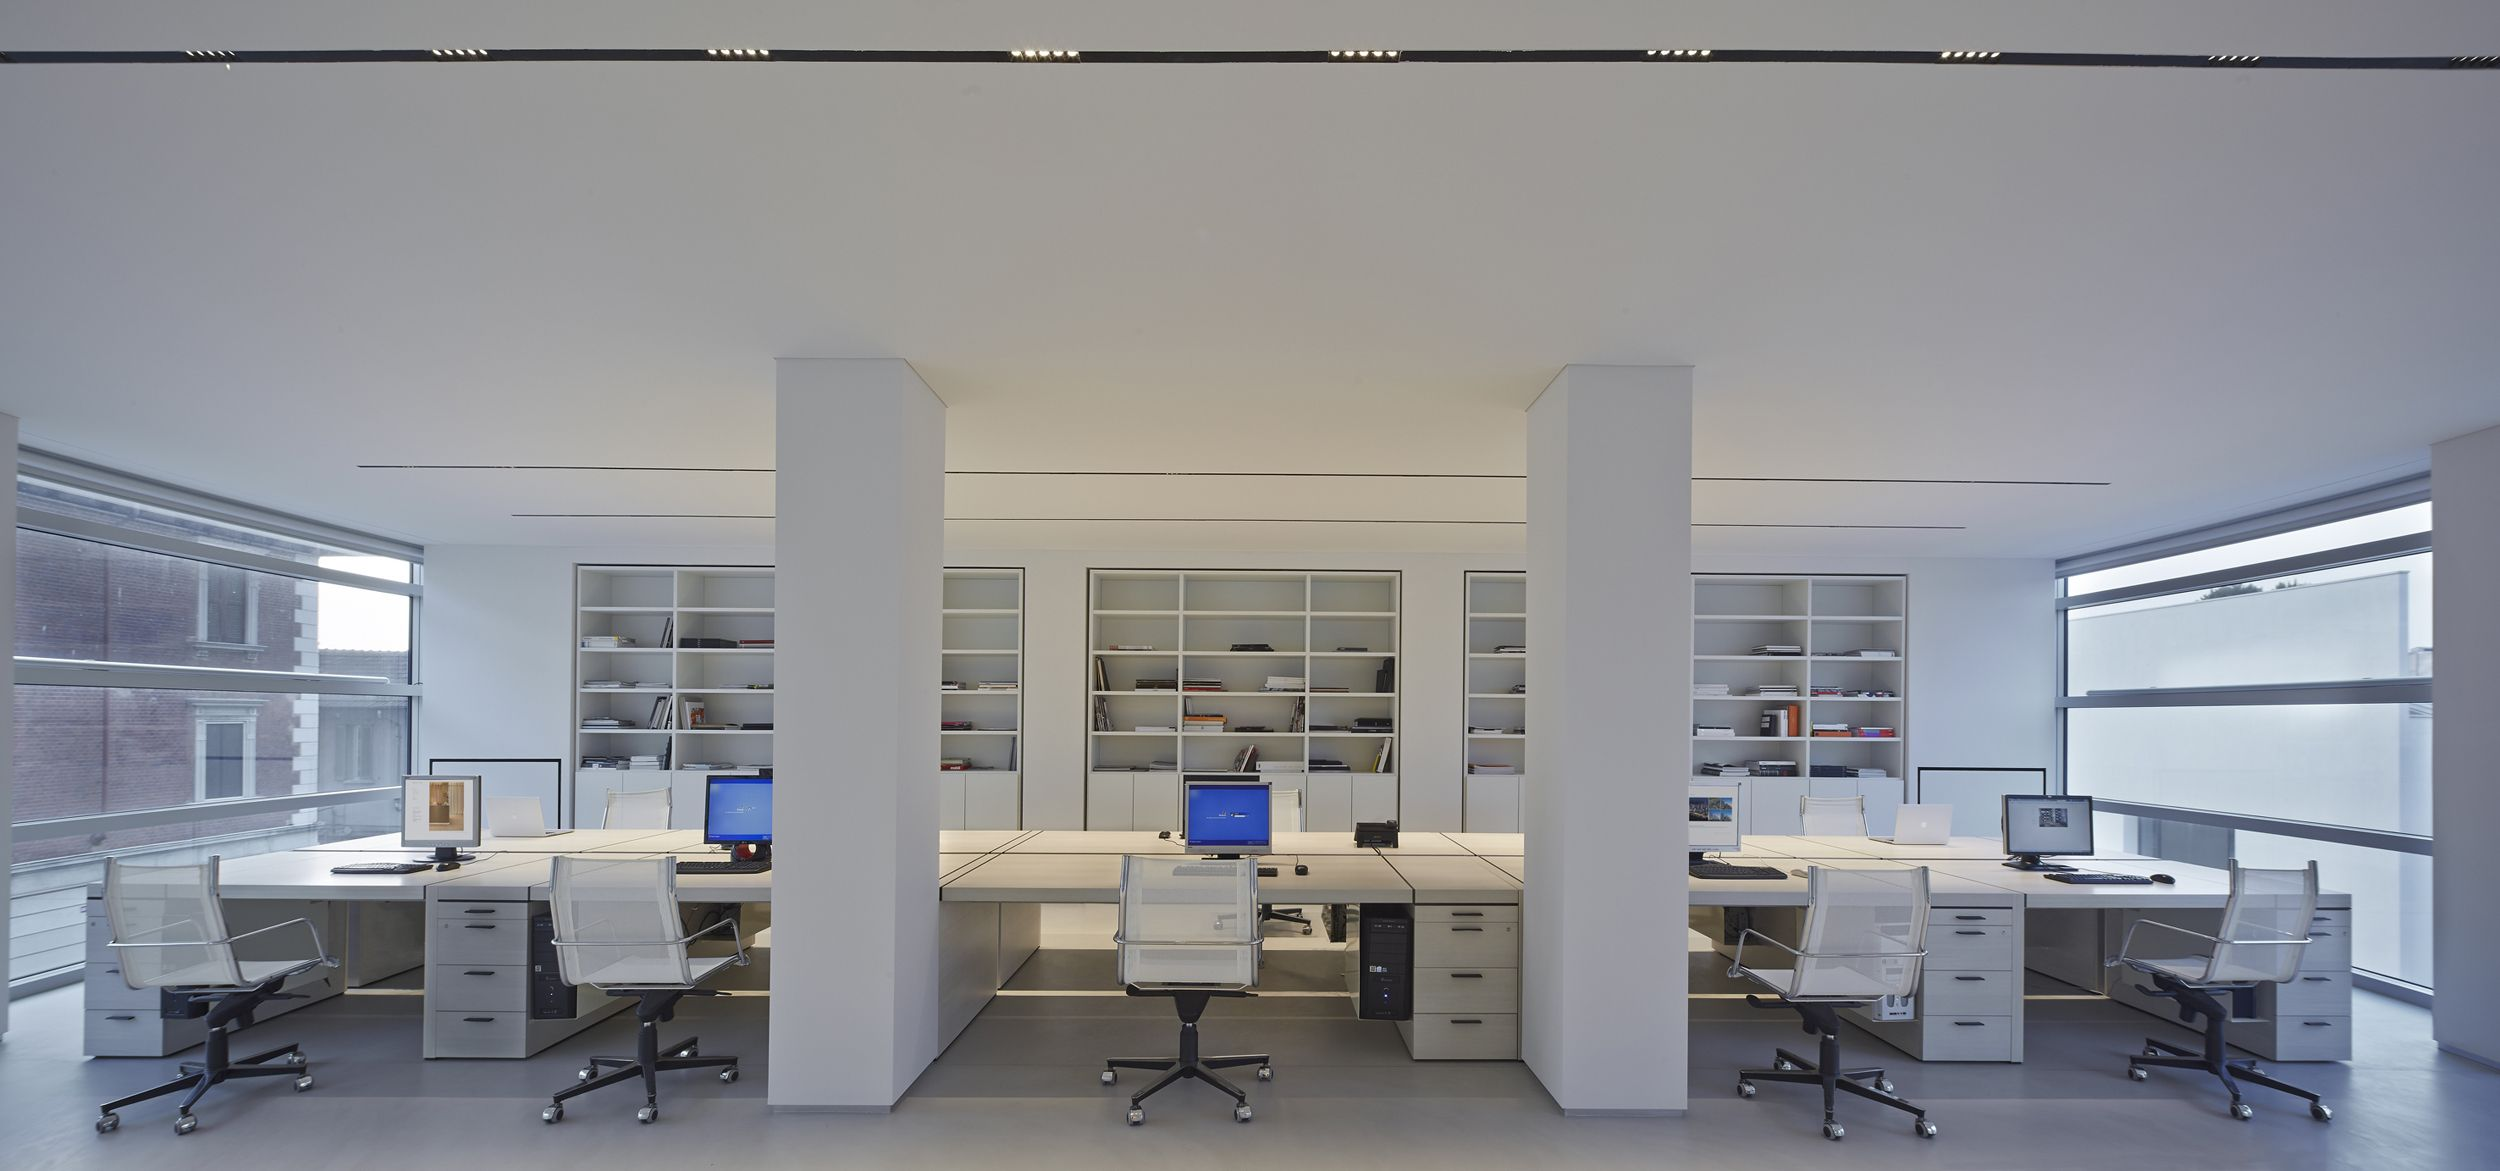 private office design. Private Office | Space Pinterest Interiors, Designs And Spaces Design